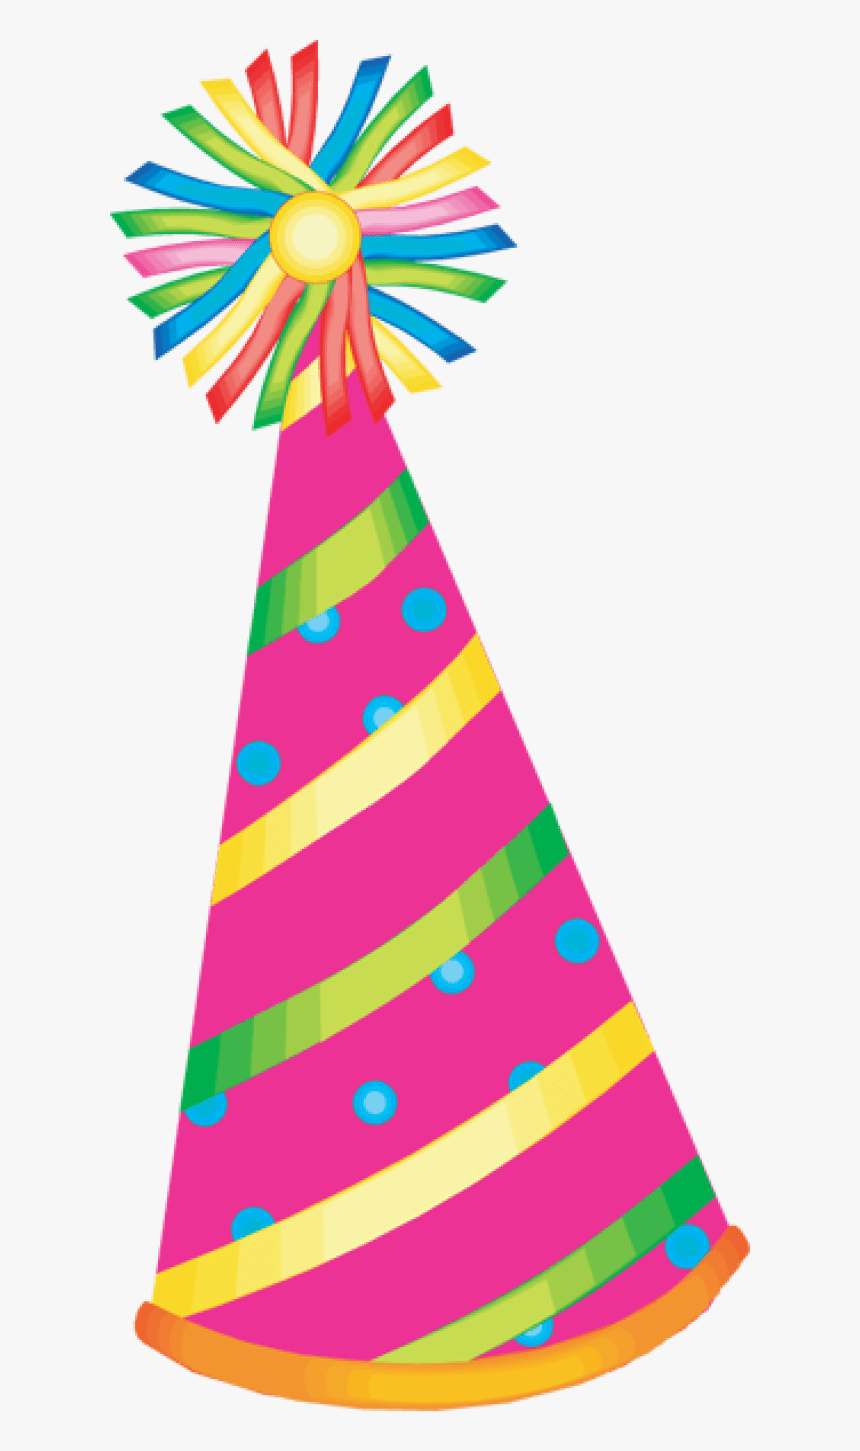 hats clipart new years eve transparent background birthday hat clipart hd png download transparent png image pngitem transparent background birthday hat